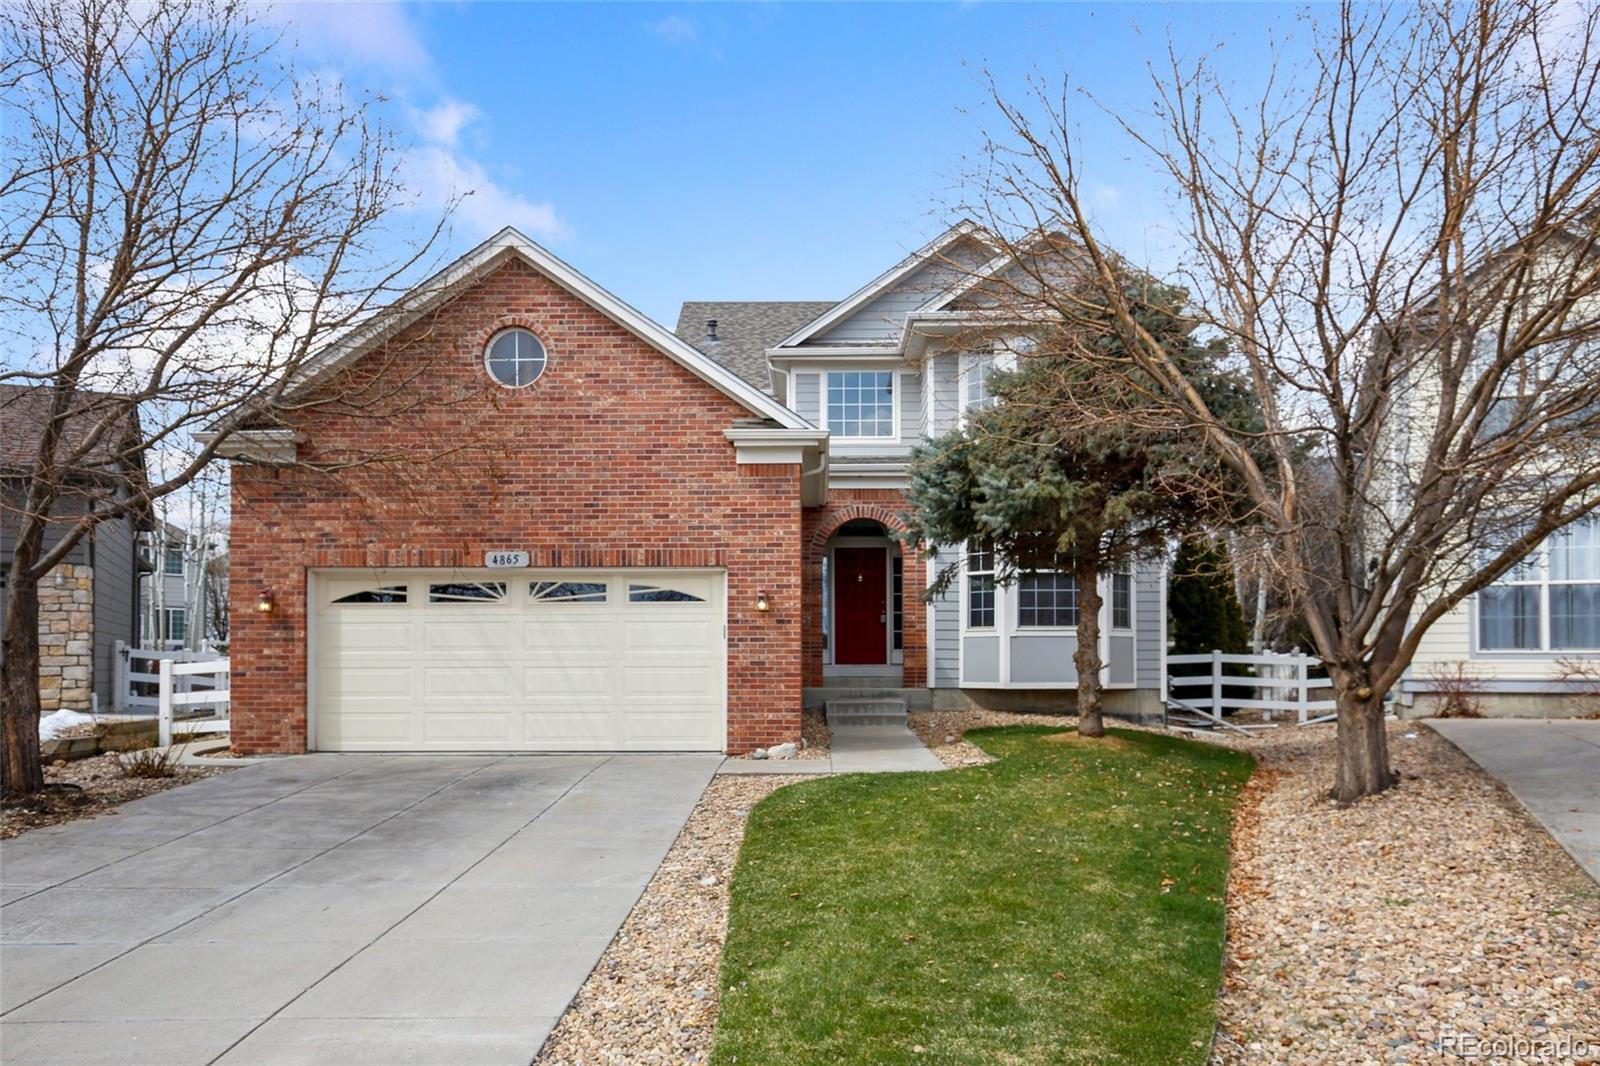 MLS# 7661027 - 1 - 4865 W 116th Court, Westminster, CO 80031